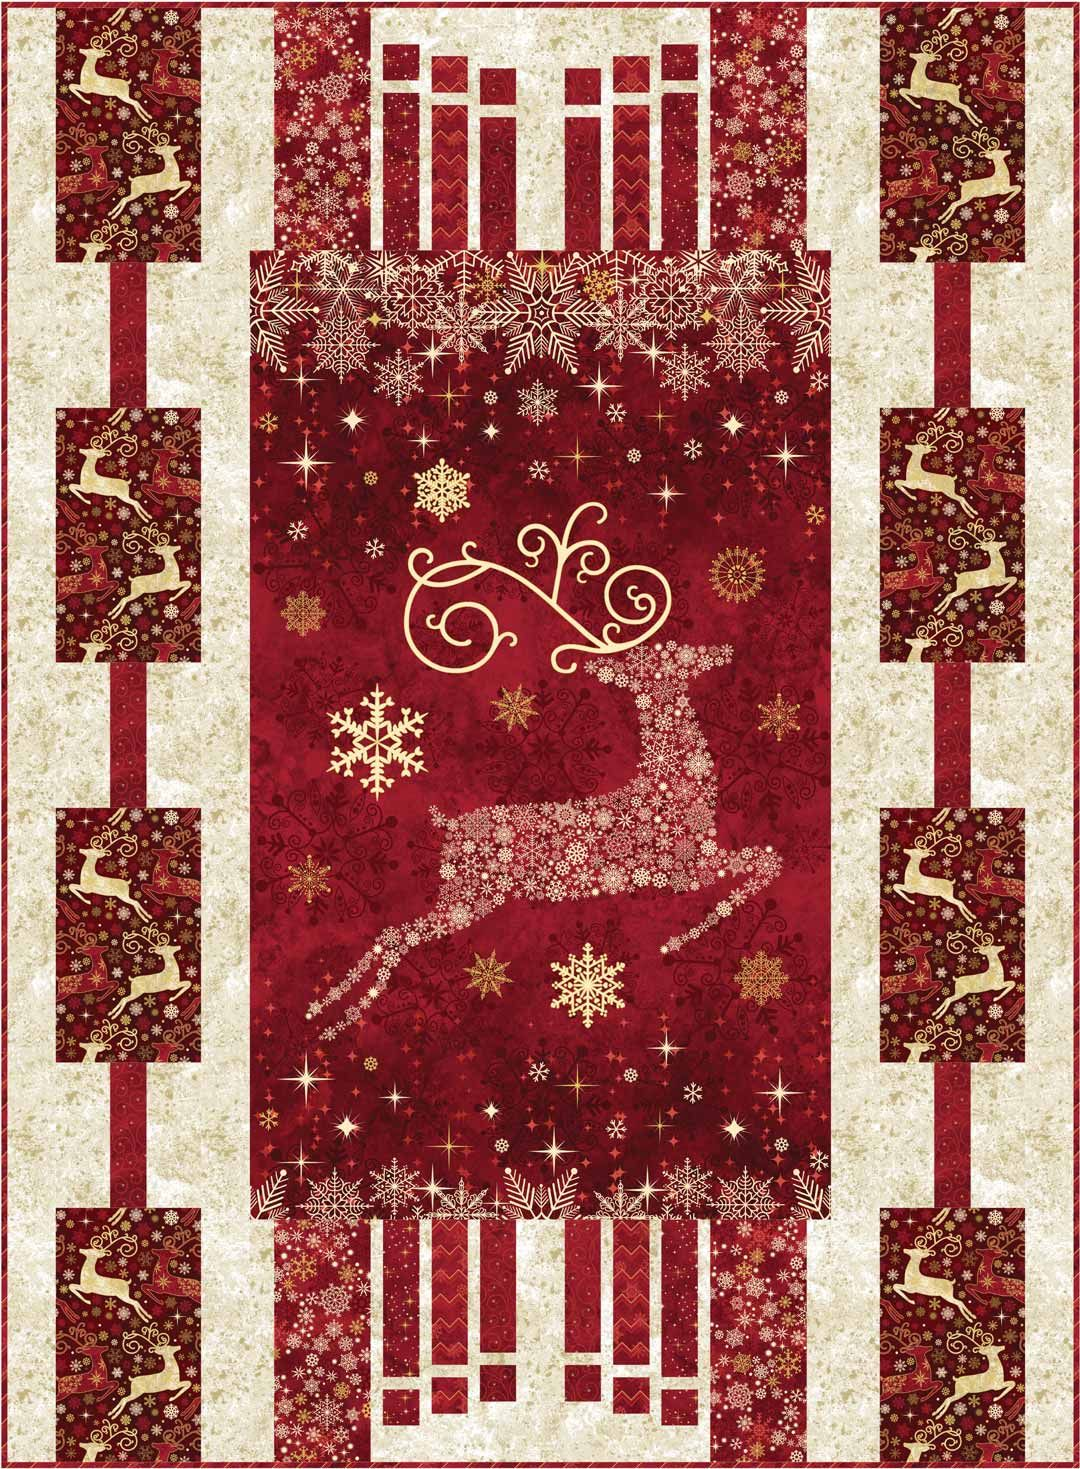 Dazzle Christmas Panel Quilt Pattern With Three Border